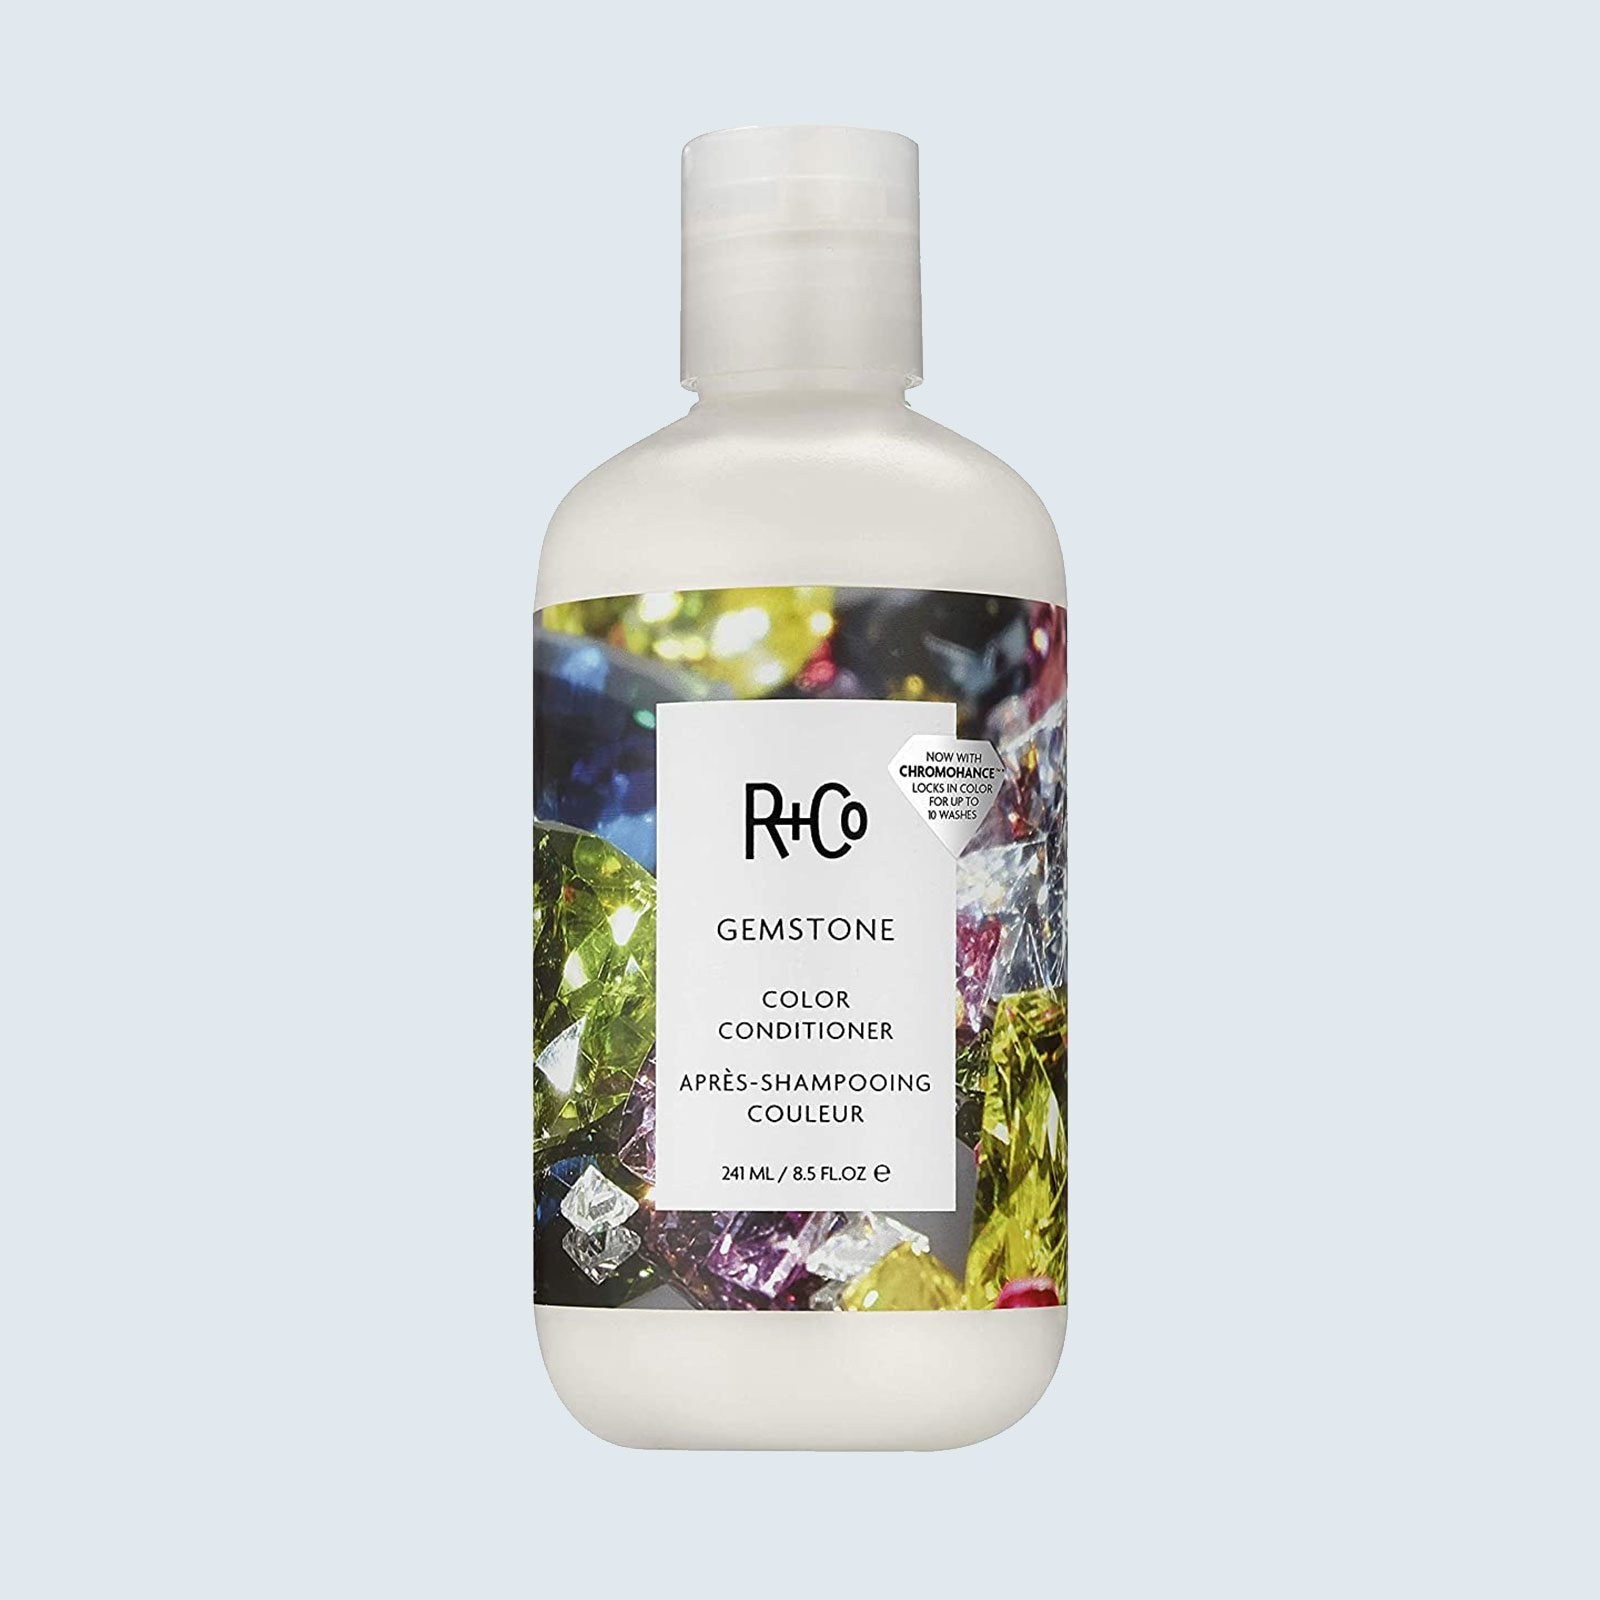 Best conditioner for color-treated hair: R+Co Gemstone Color Conditioner